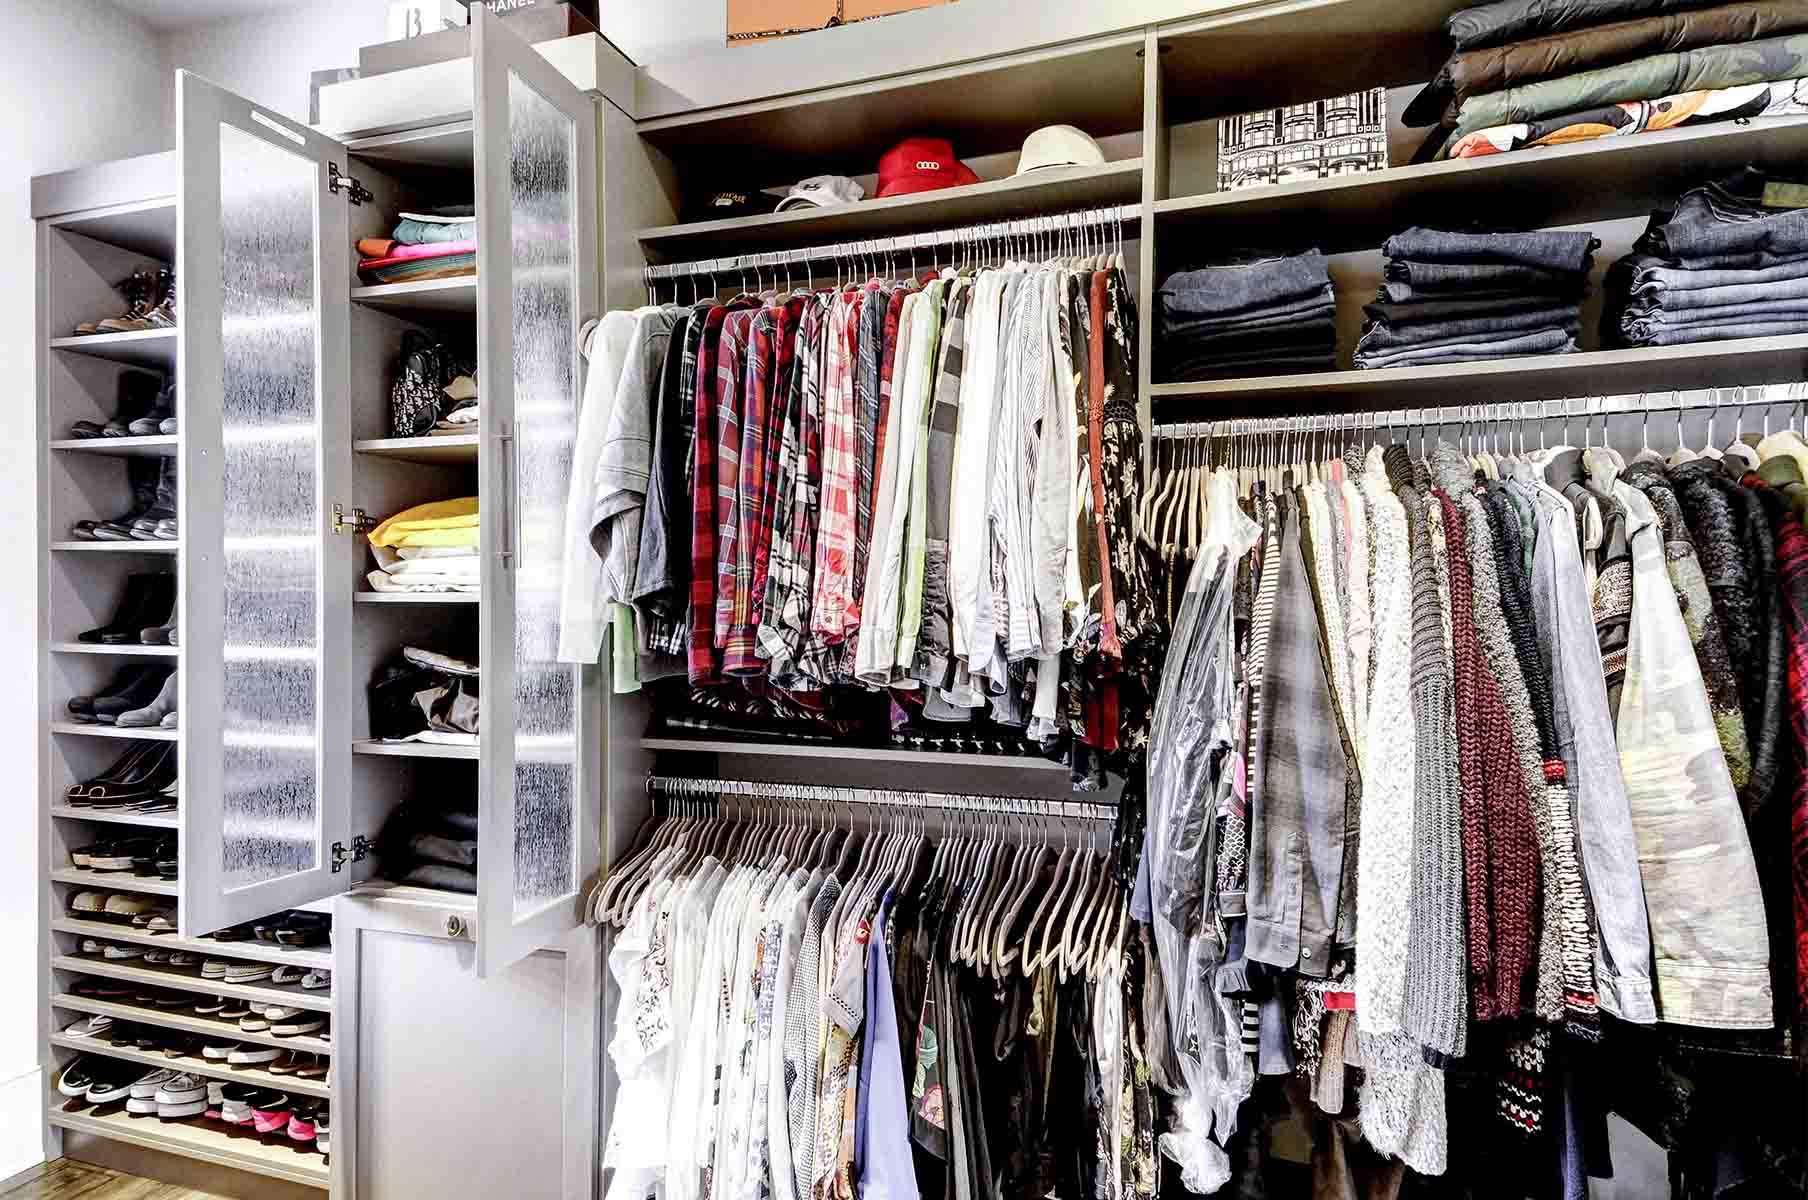 Tidy Up, Tidy Down Marie Kondo's Top 5 Tips